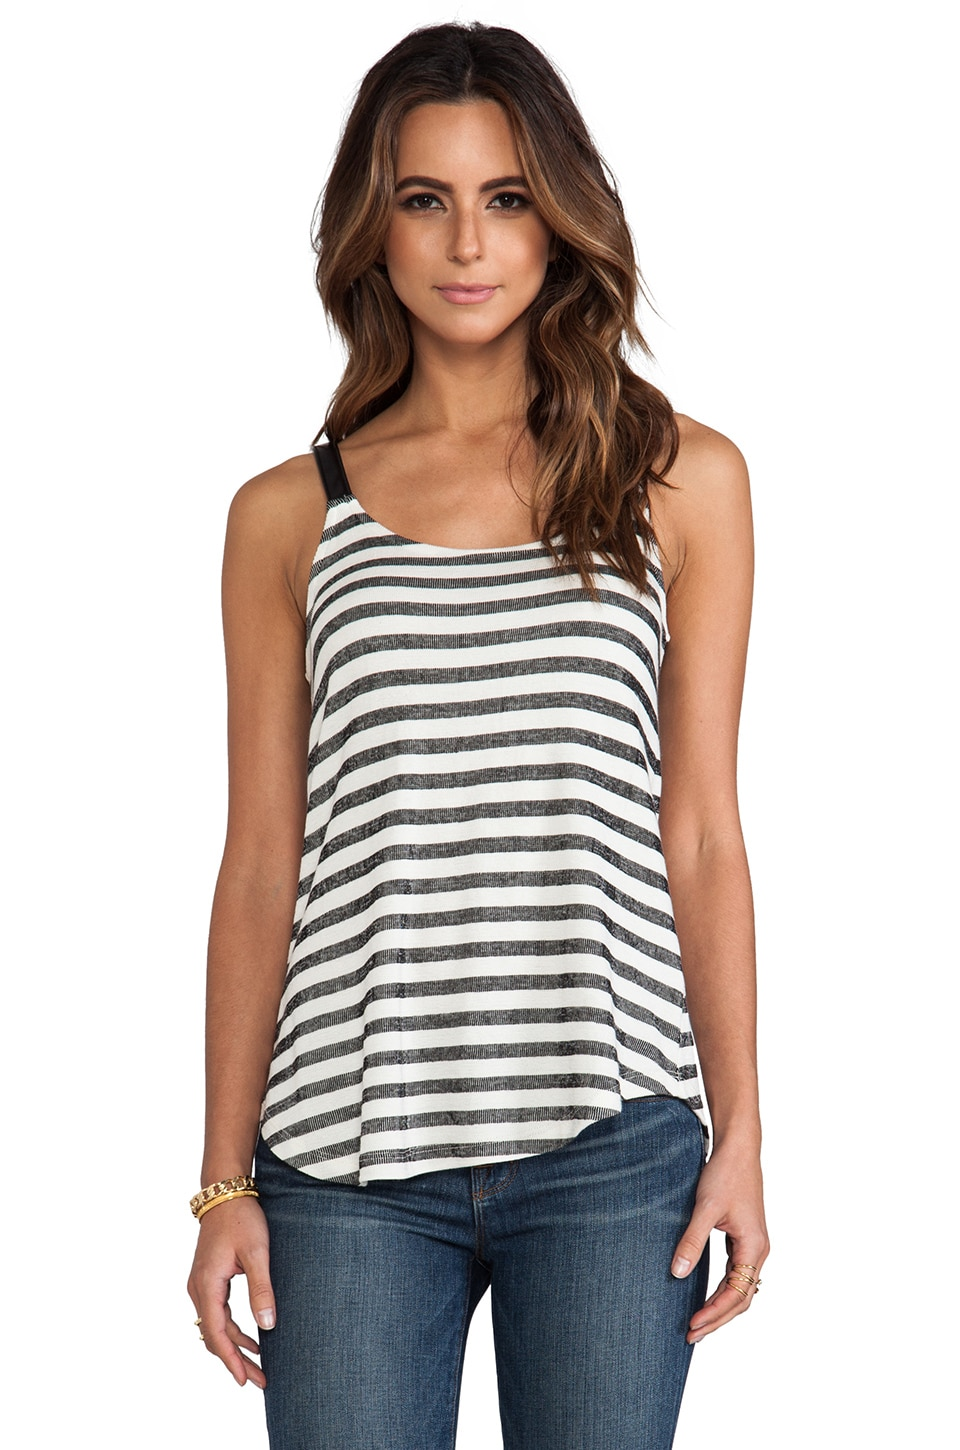 Splendid Cabrillo Stripe Tank in Black